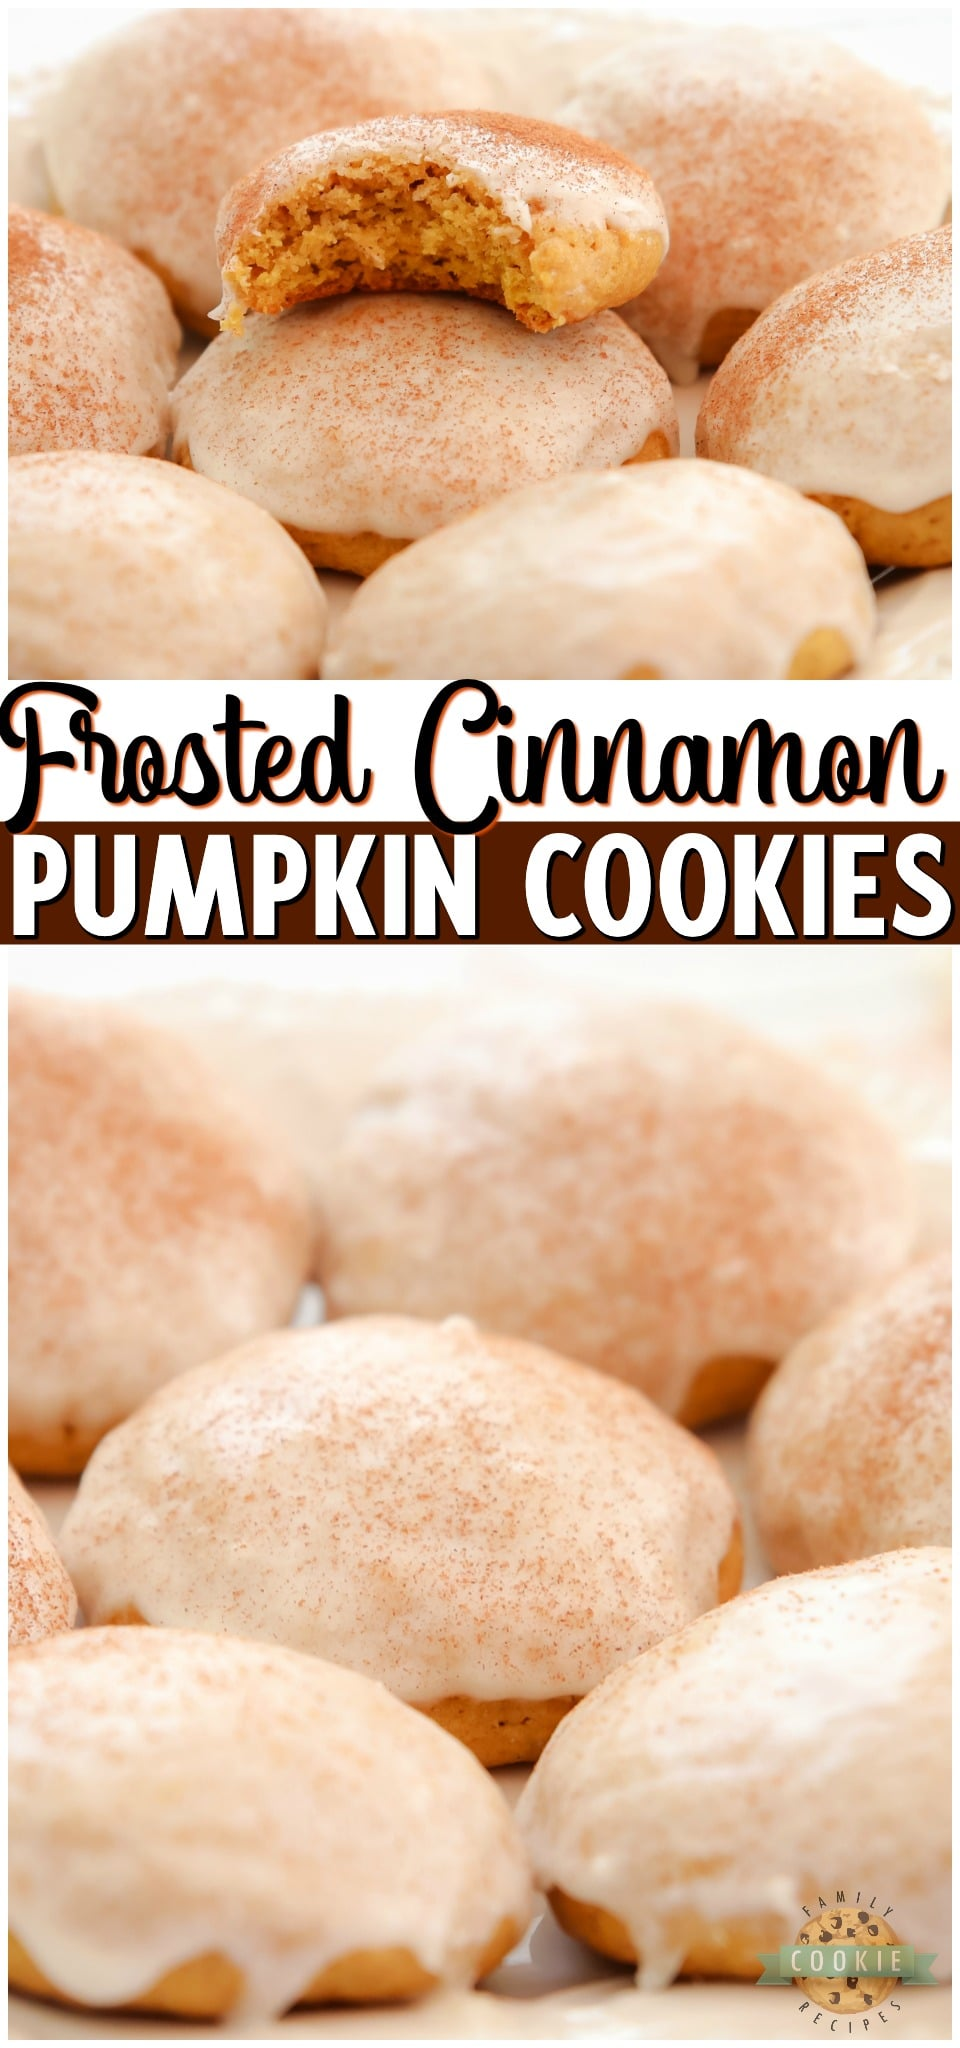 Iced Cinnamon Pumpkin Cookies are soft & pillowy pumpkin cookies topped with a simple vanilla icing and cinnamon. Lovely texture & flavor in these homemade pumpkin sugar cookies. #pumpkin #cookies #iced #baking #desserts #easyrecipe from FAMILY COOKIE RECIPES via @familycookierecipes